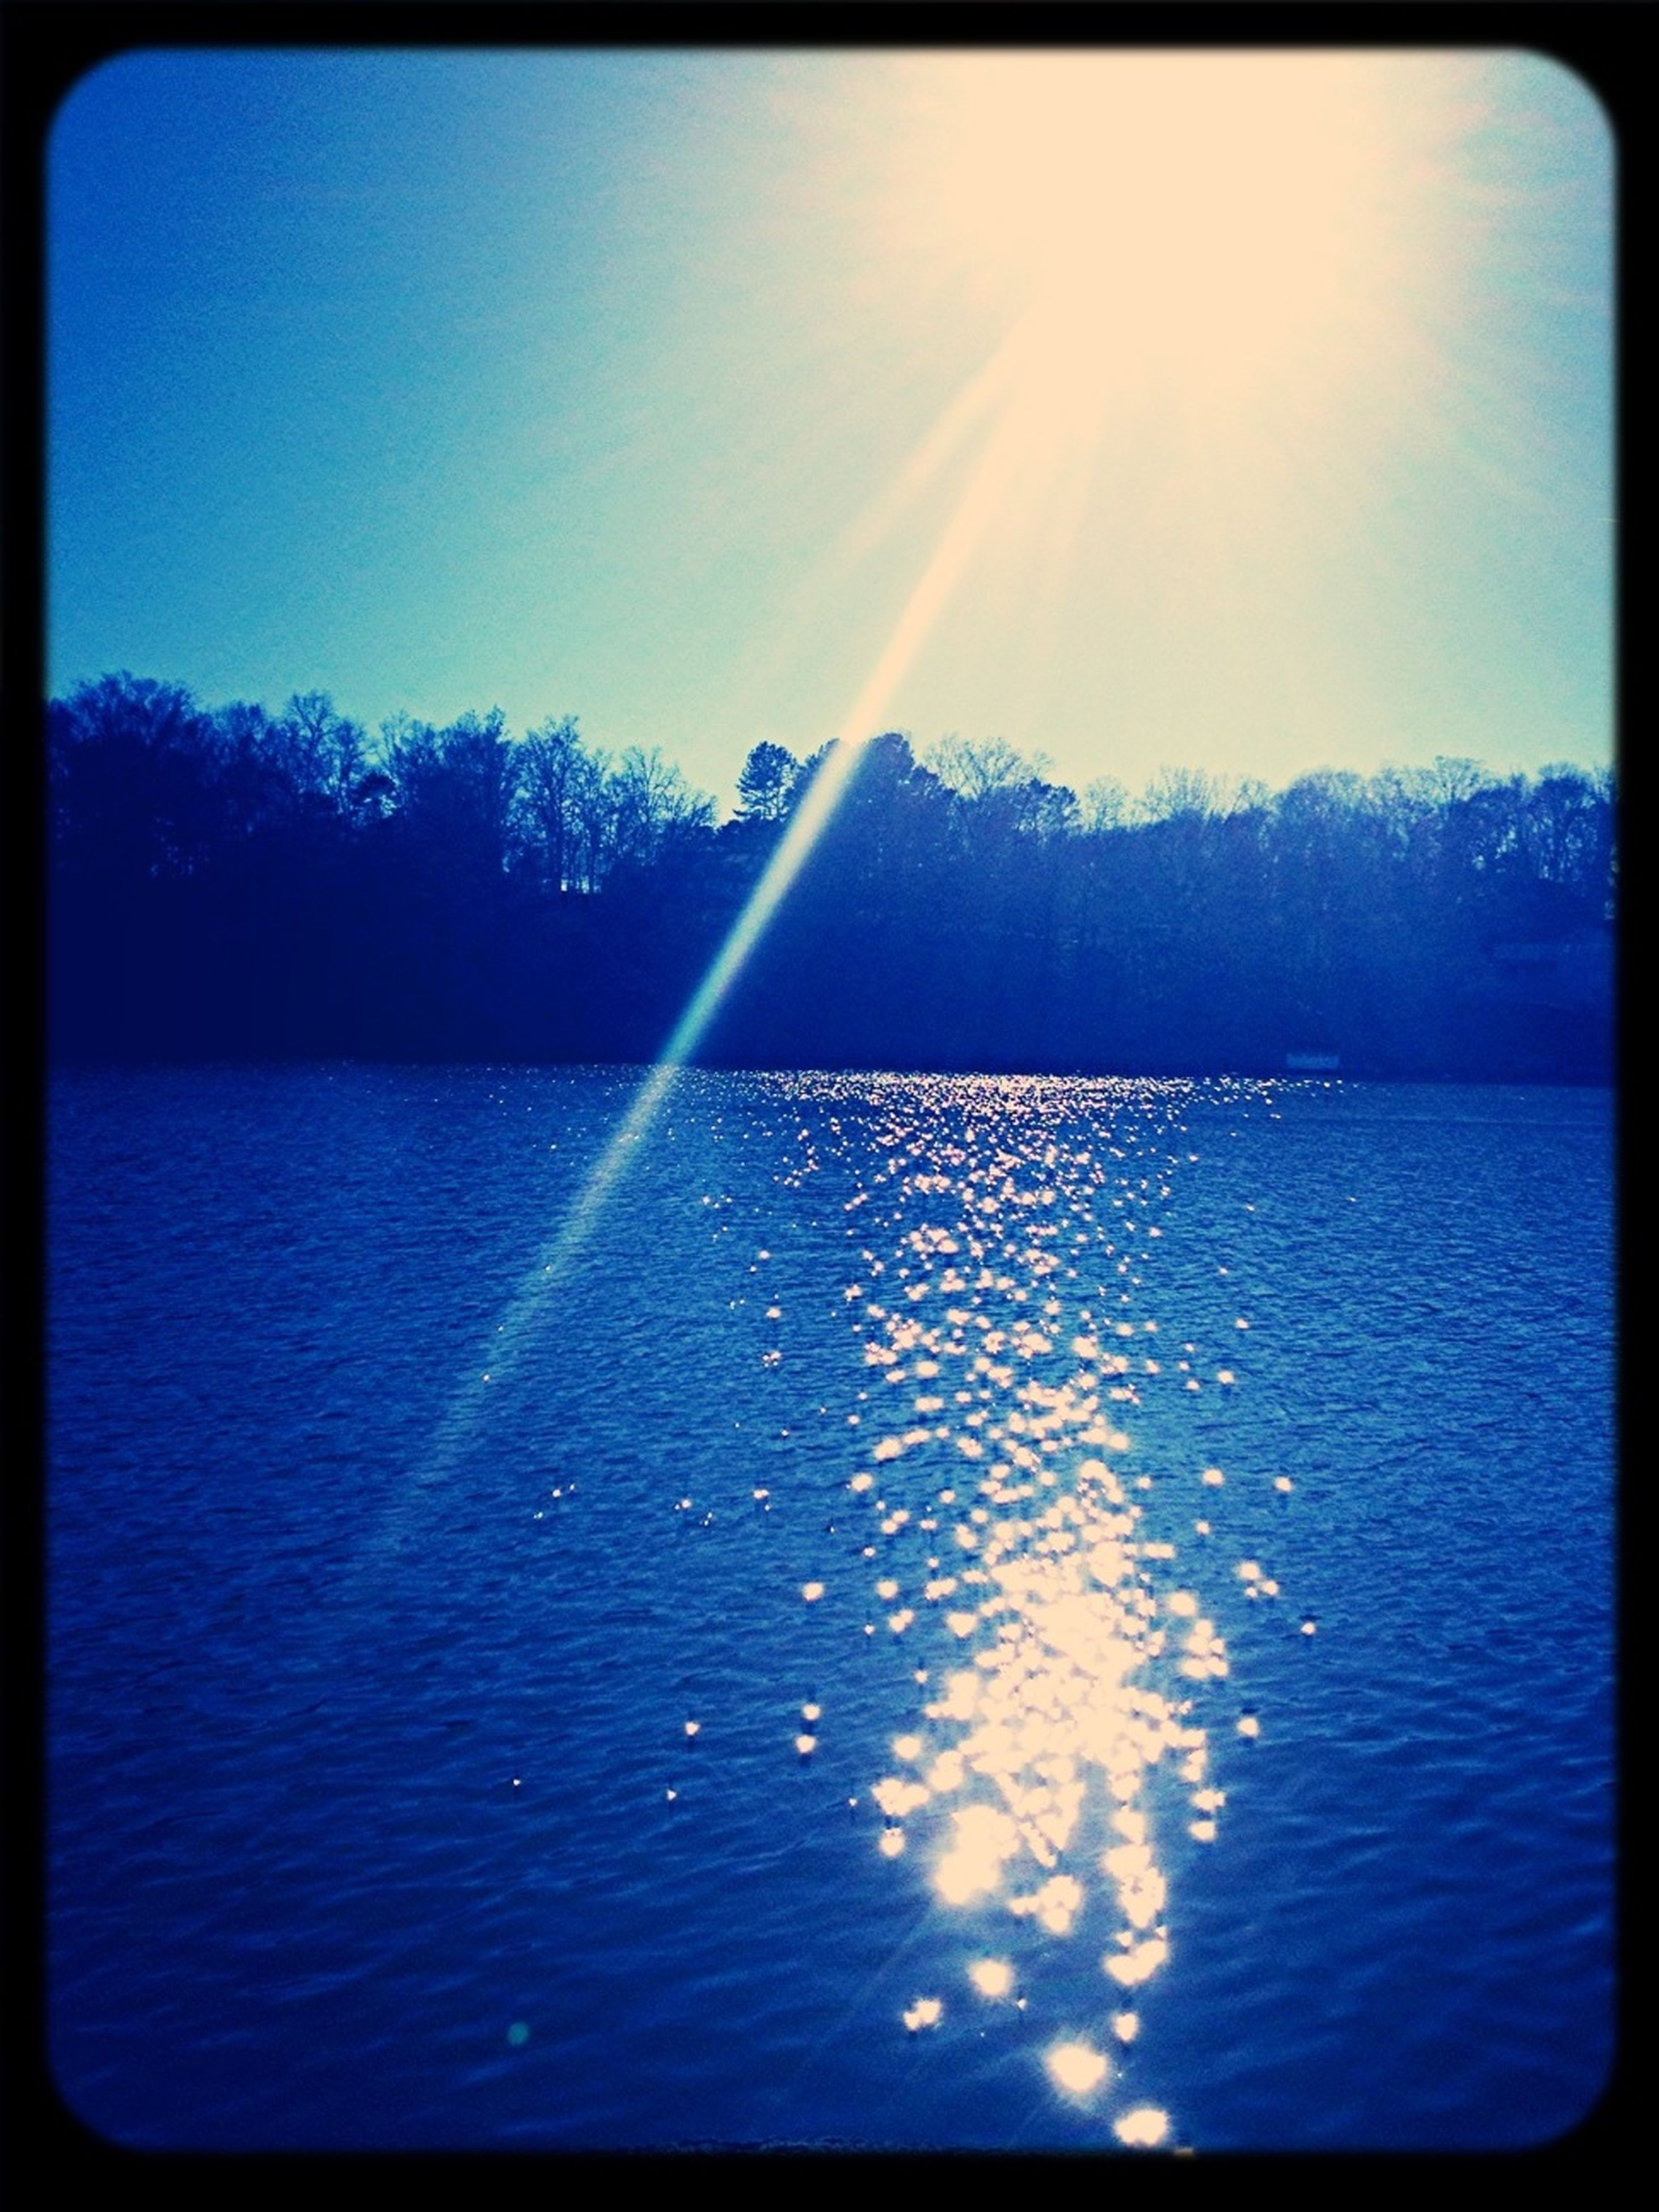 sun, water, sunbeam, transfer print, sunlight, lens flare, blue, tranquil scene, tranquility, auto post production filter, reflection, beauty in nature, scenics, lake, nature, tree, sunny, sky, clear sky, bright